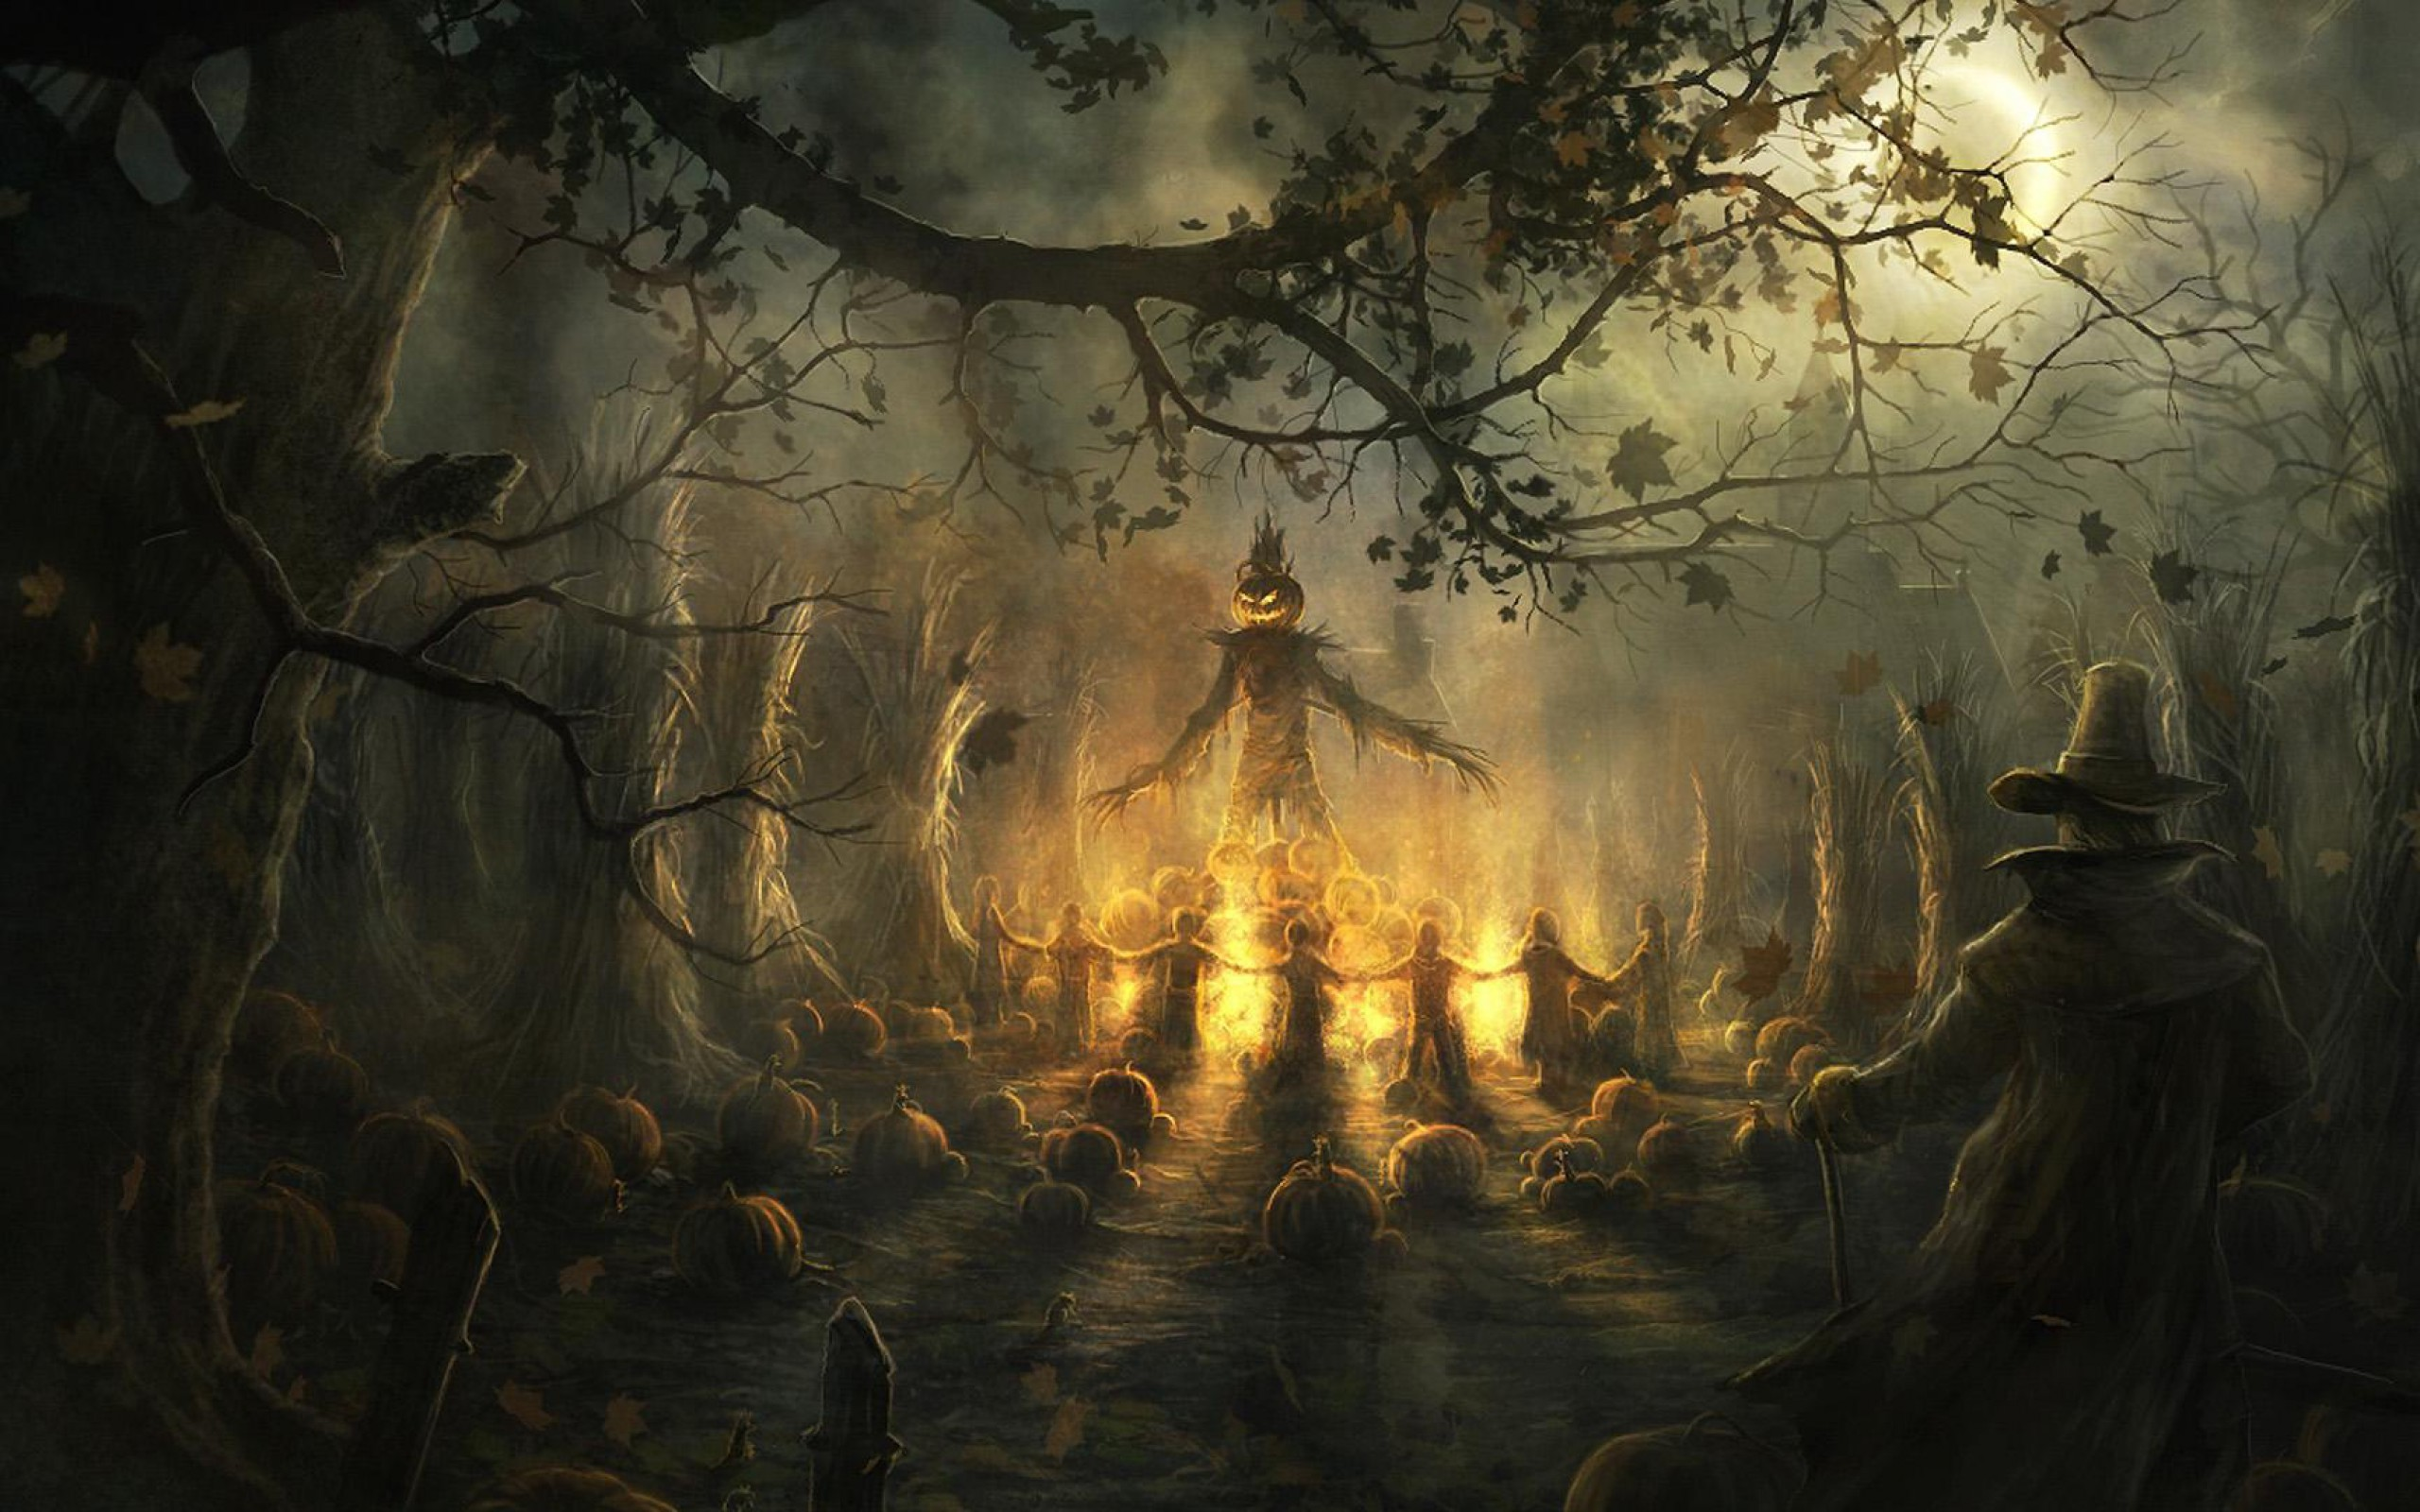 halloween backgrounds for pictures (63+ images)